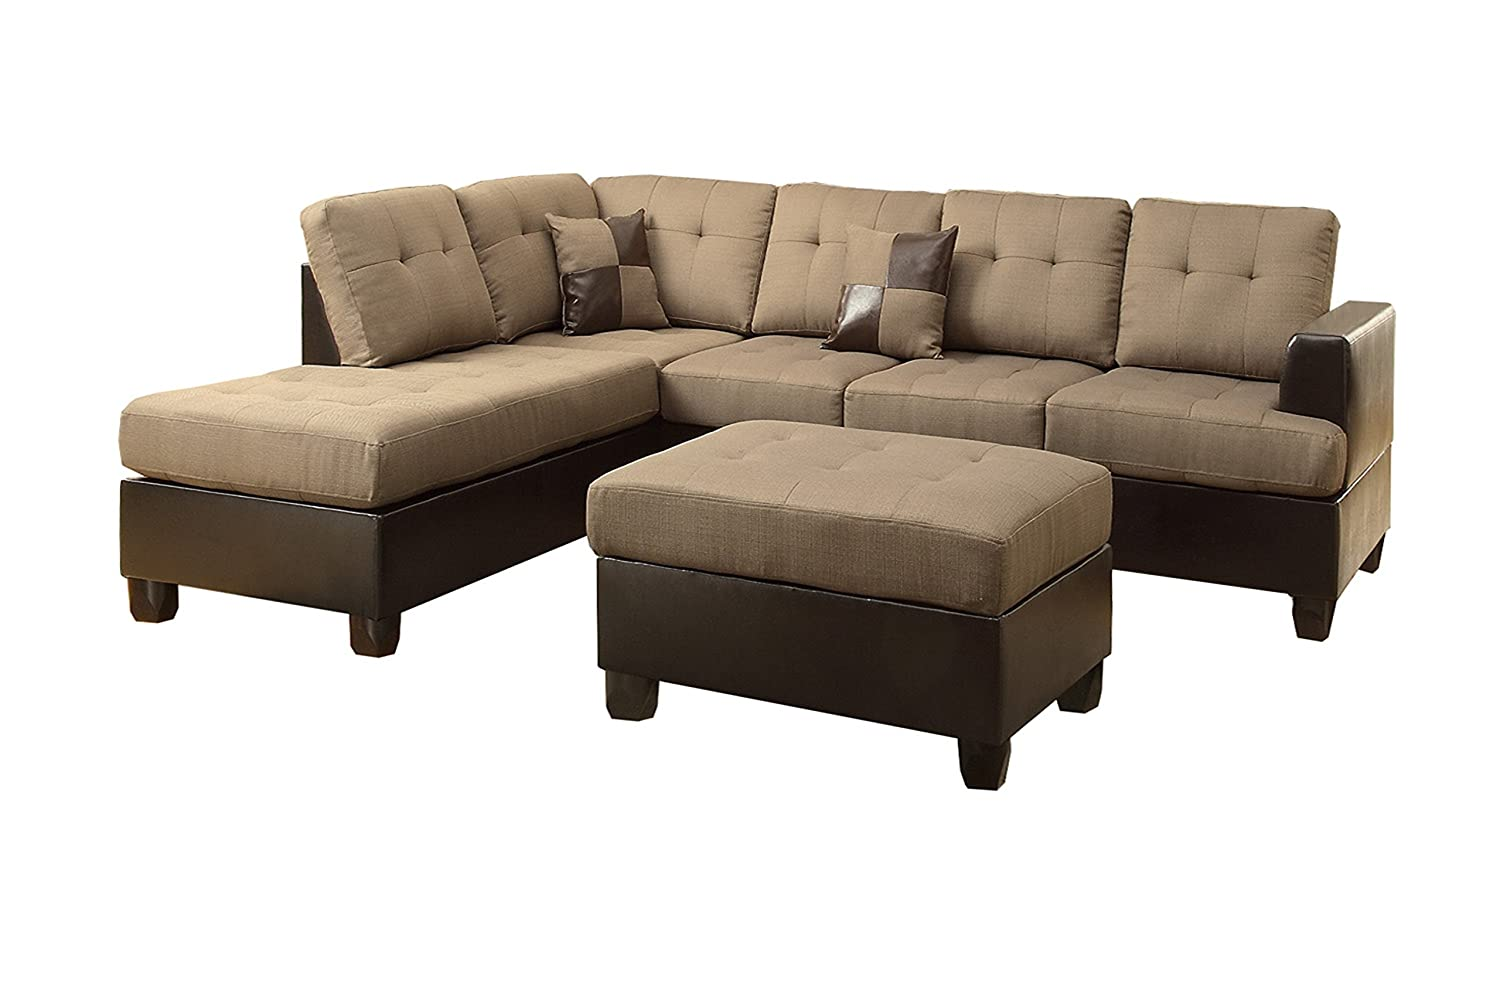 amazon com poundex bobkona winden blended linen 3 piece amazon com poundex bobkona winden blended linen 3 piece reversible sectional sofa with ottoman tan kitchen dining